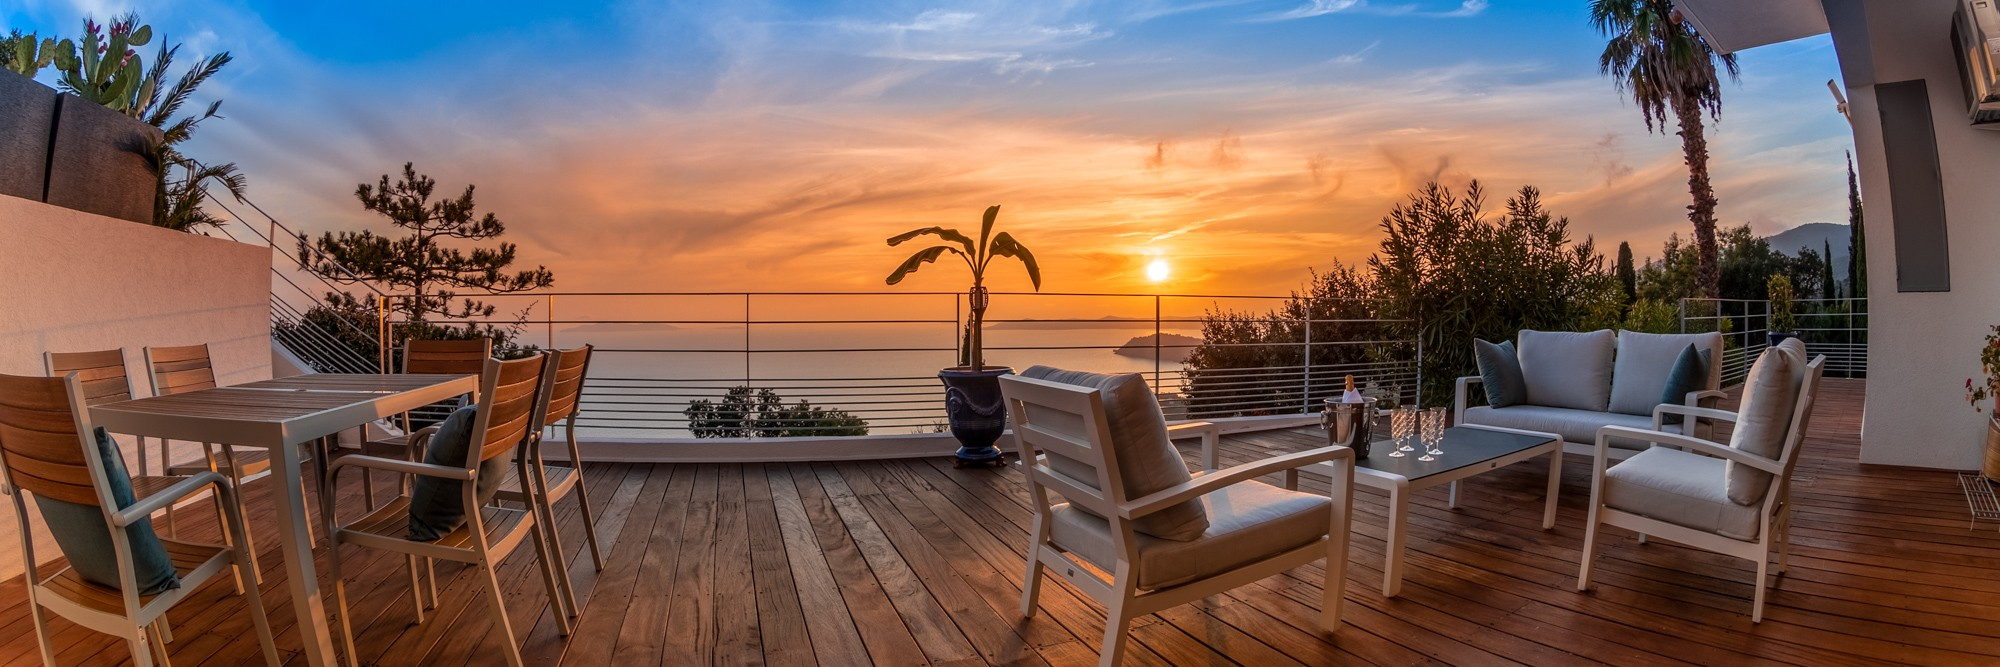 Sunset from your terrasse in Vistazur villa